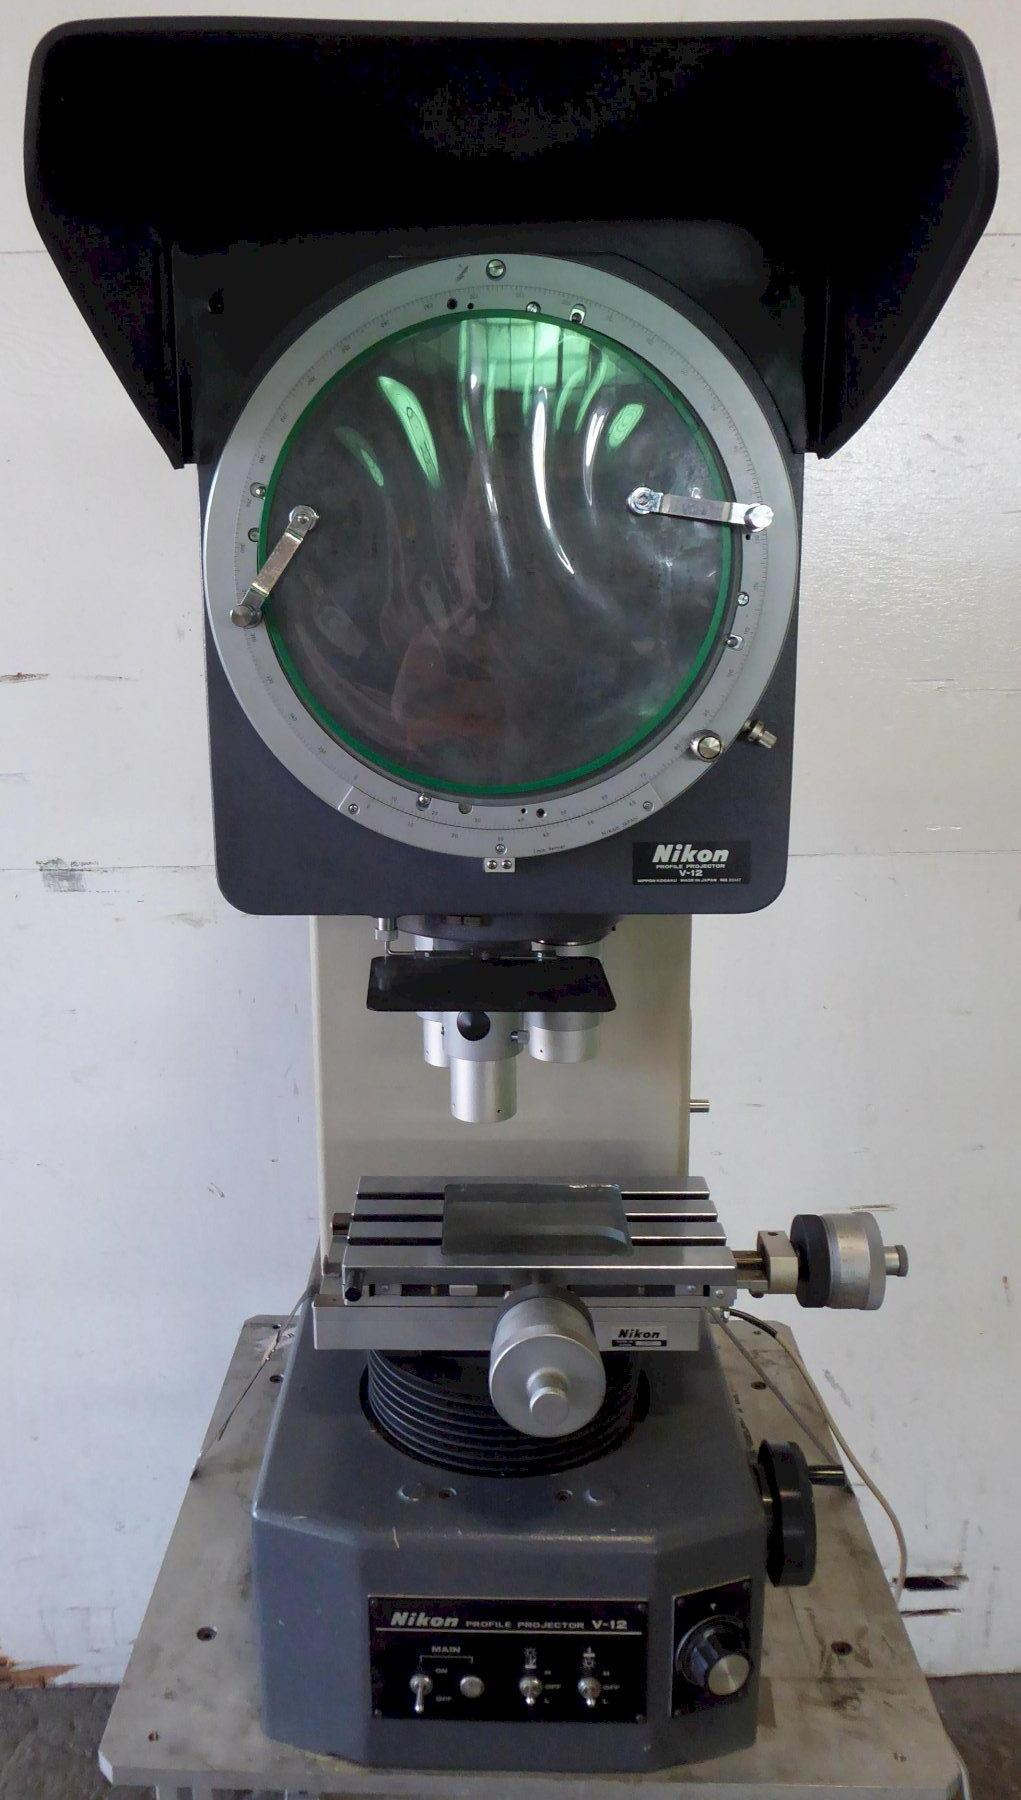 12″ Nikon Optical Comparator No. V-12, Bench Top, Vert. Beam, 10X/20X/50X, Surf. Illum.,